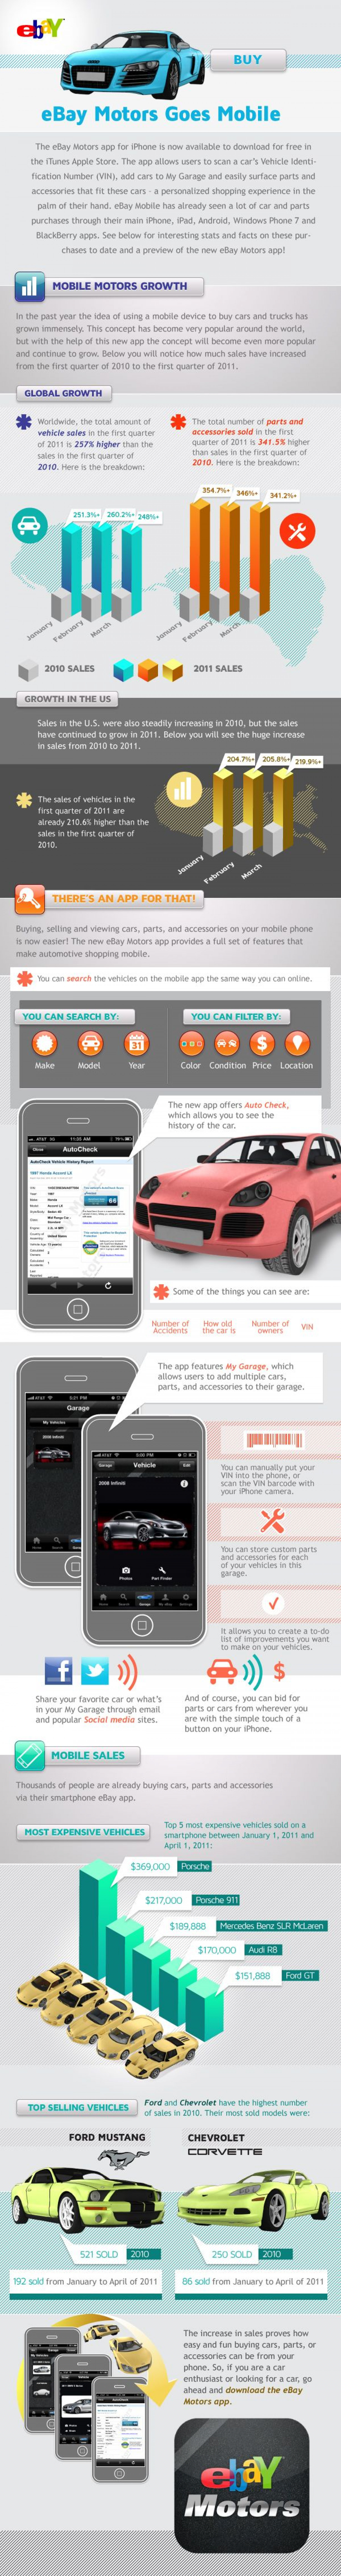 Ebay Motors Goes Mobile Infographic